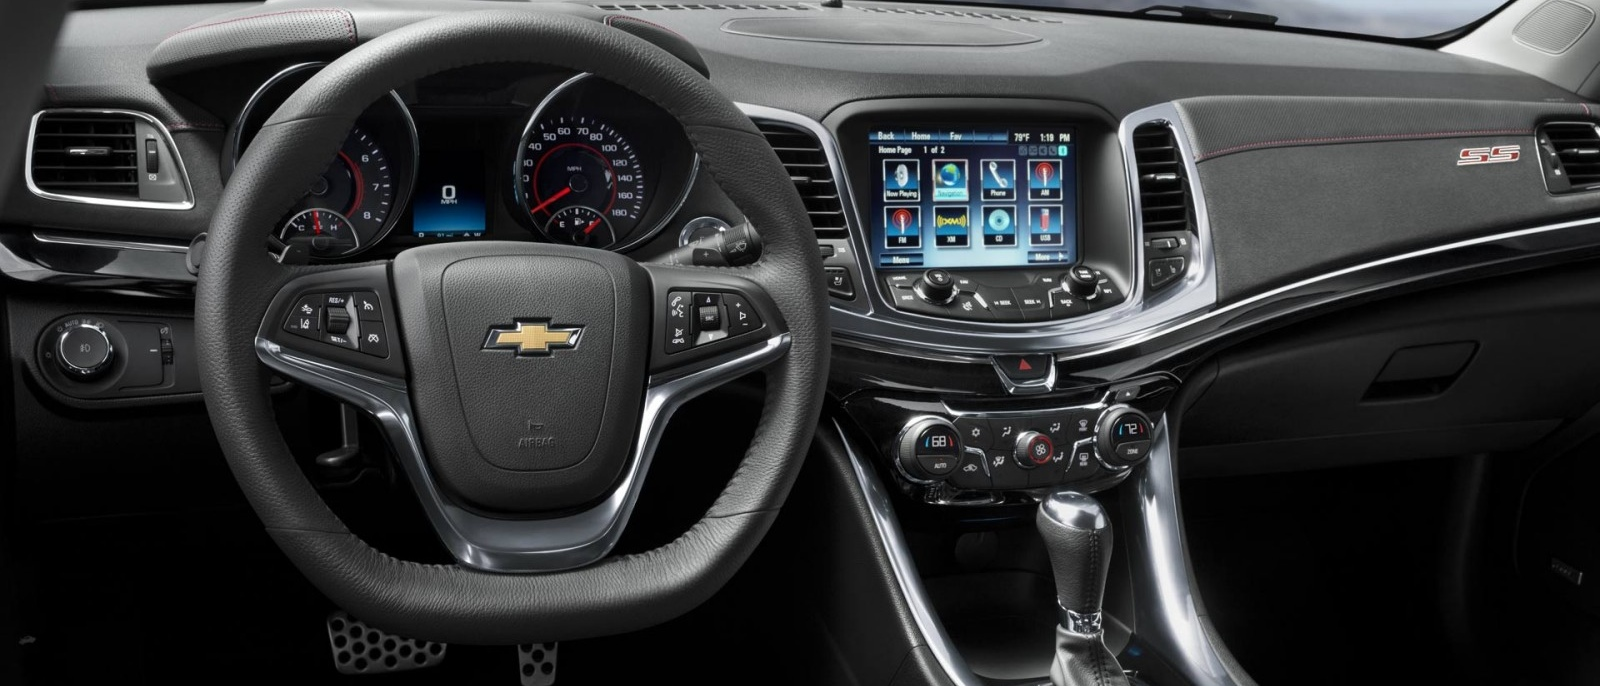 2014 Chevy SS Interior Front Image